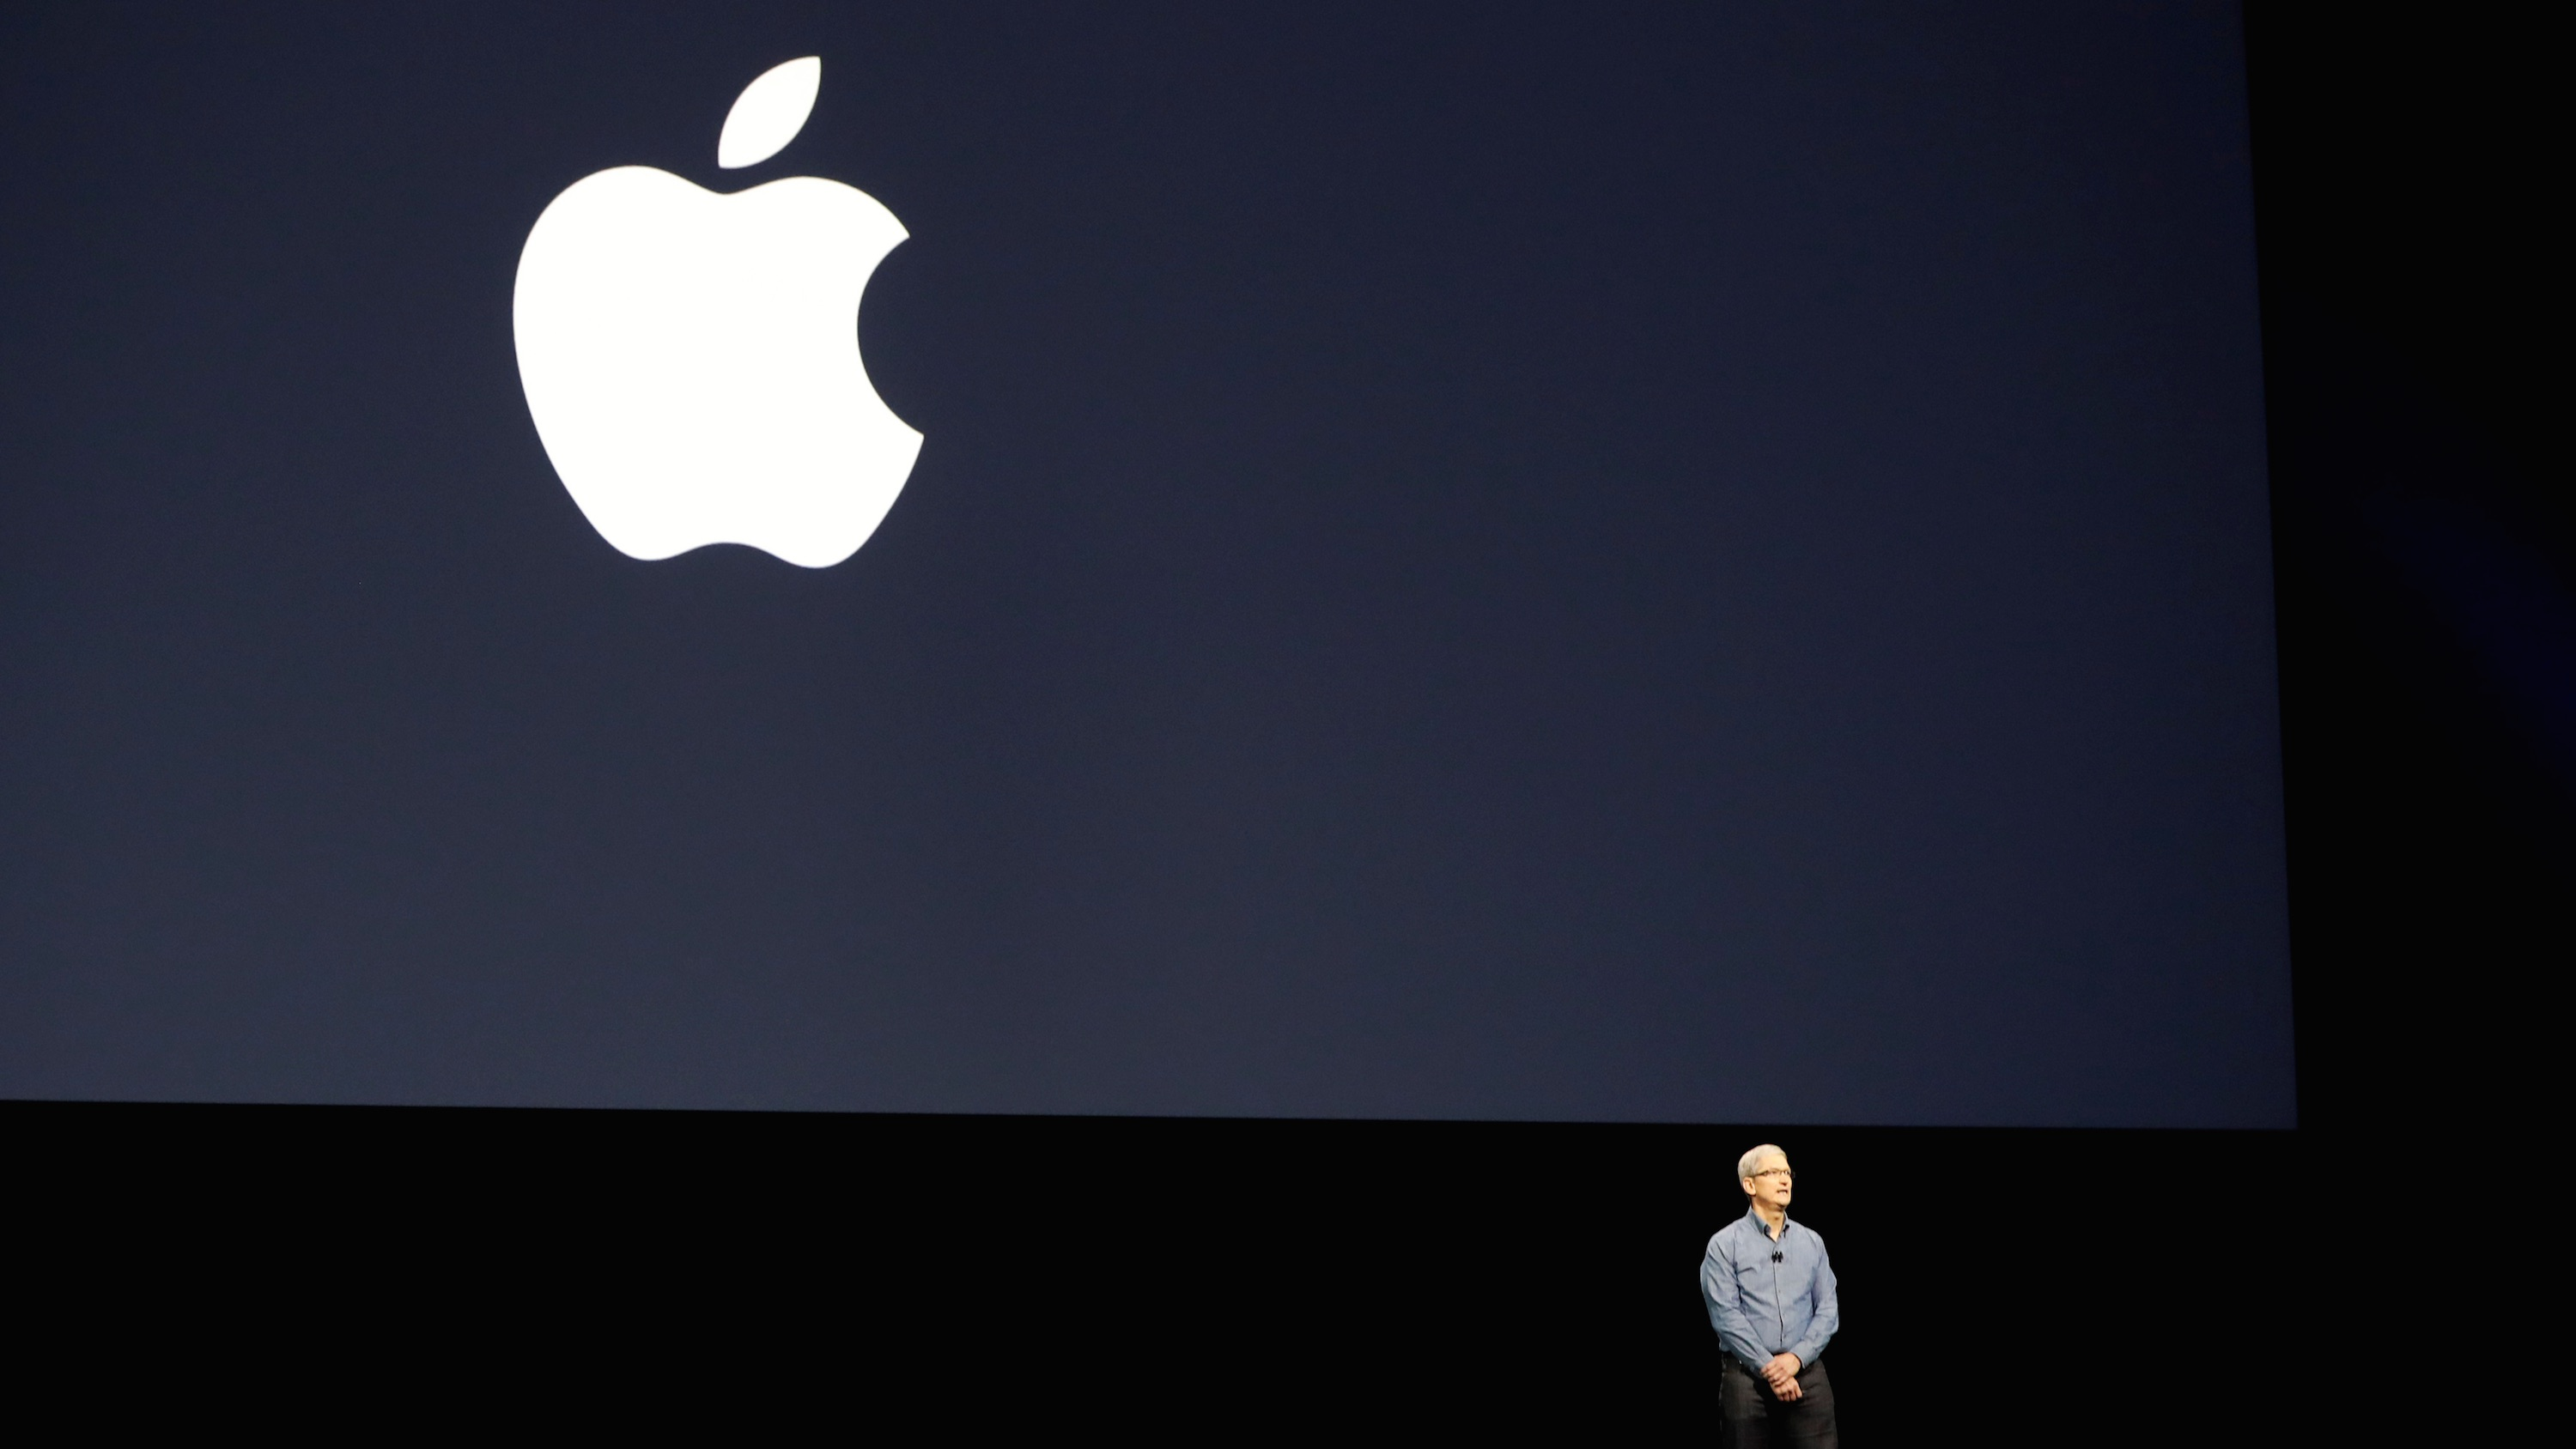 Companies like Apple are nervous of the impact association with Trump could have on their brands.